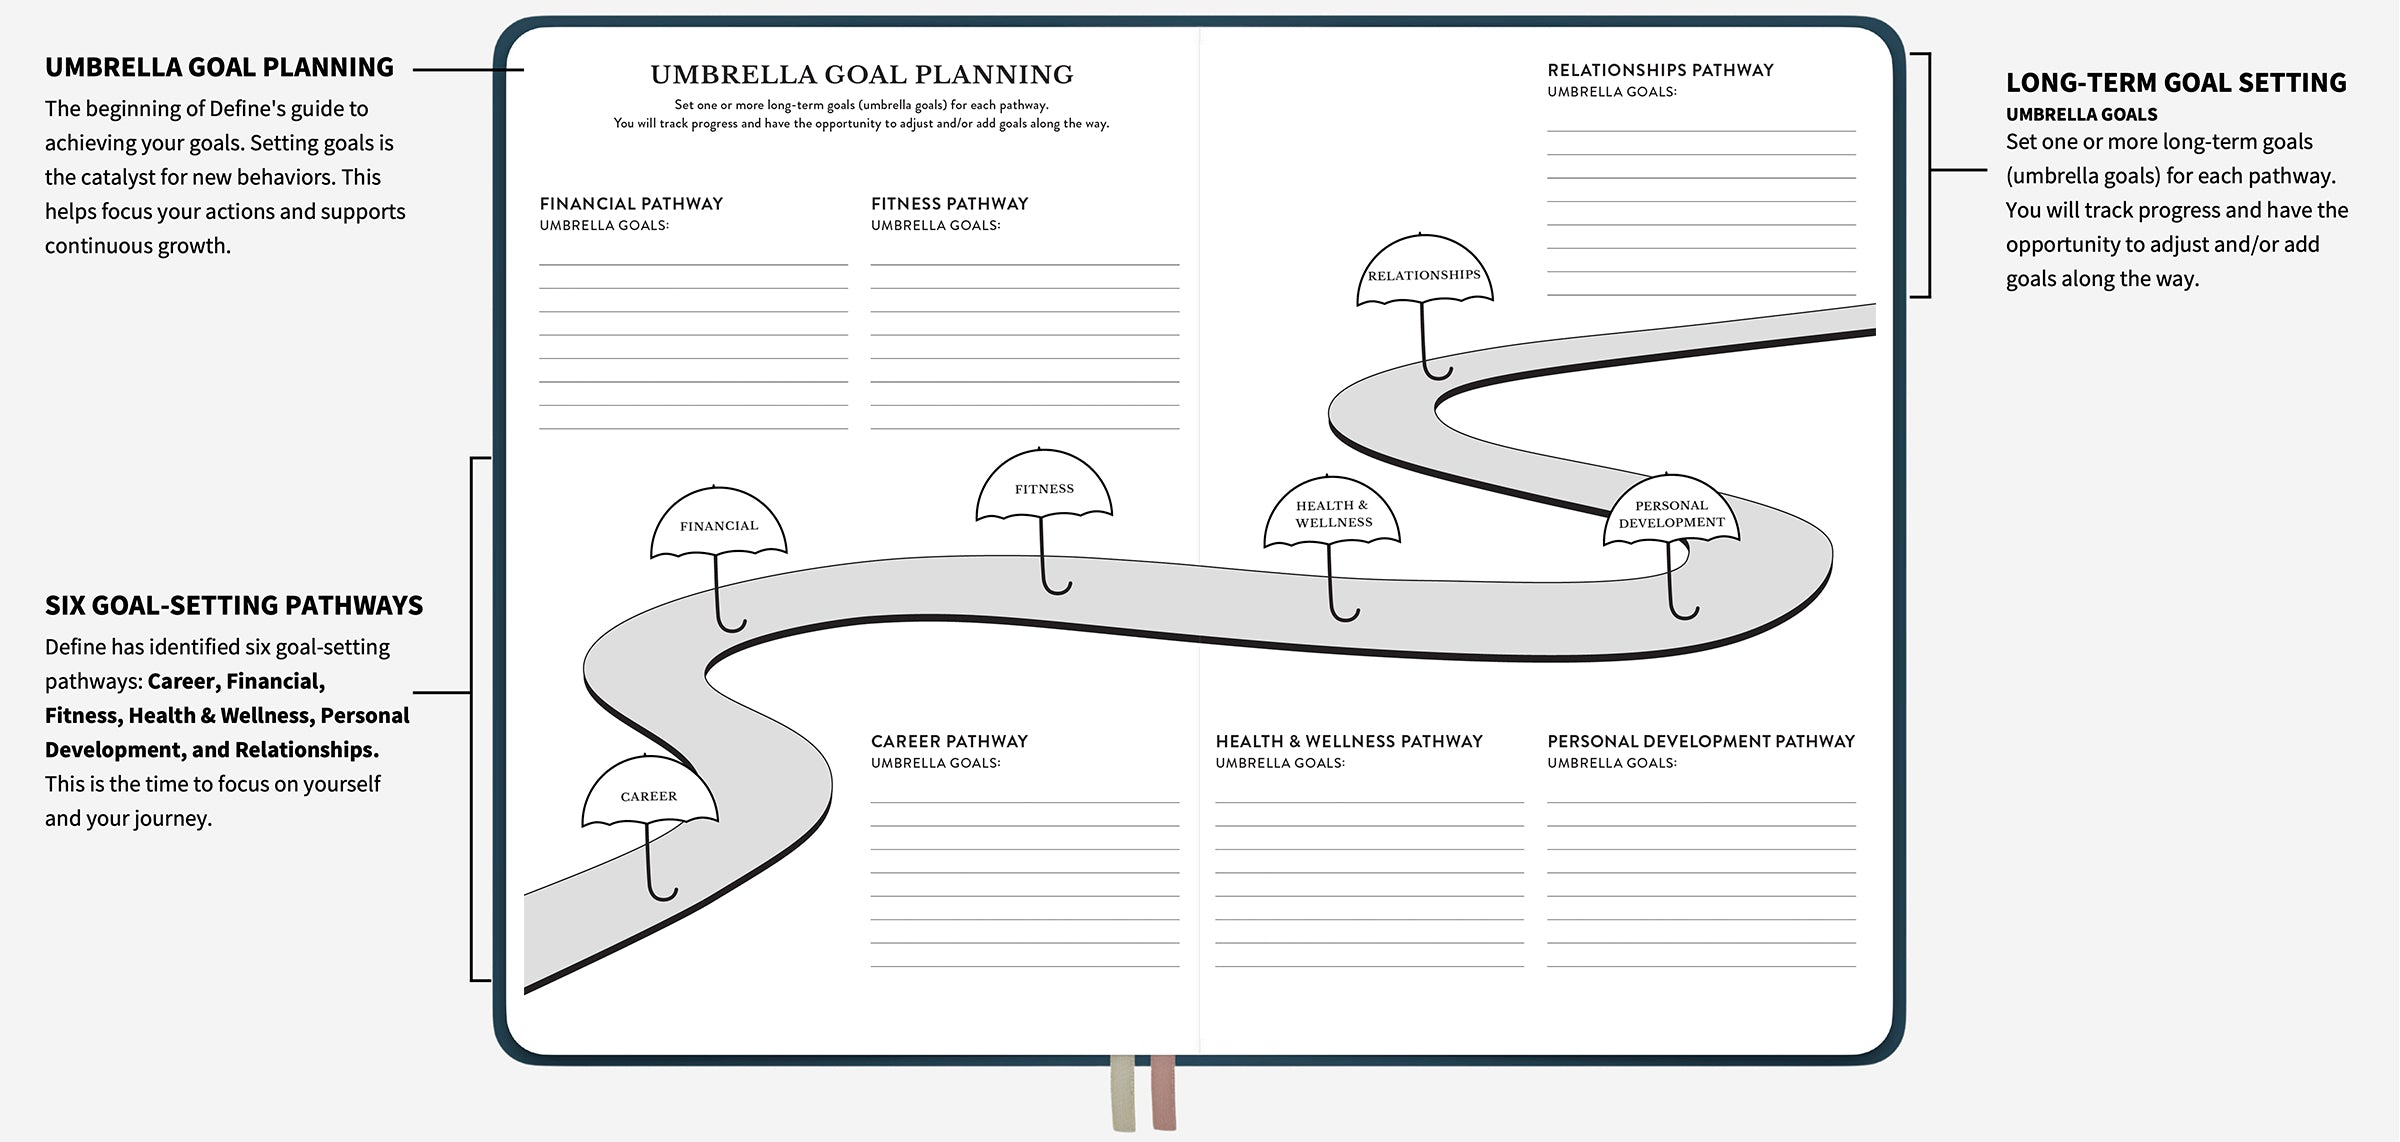 Example of the umbrella goal layout